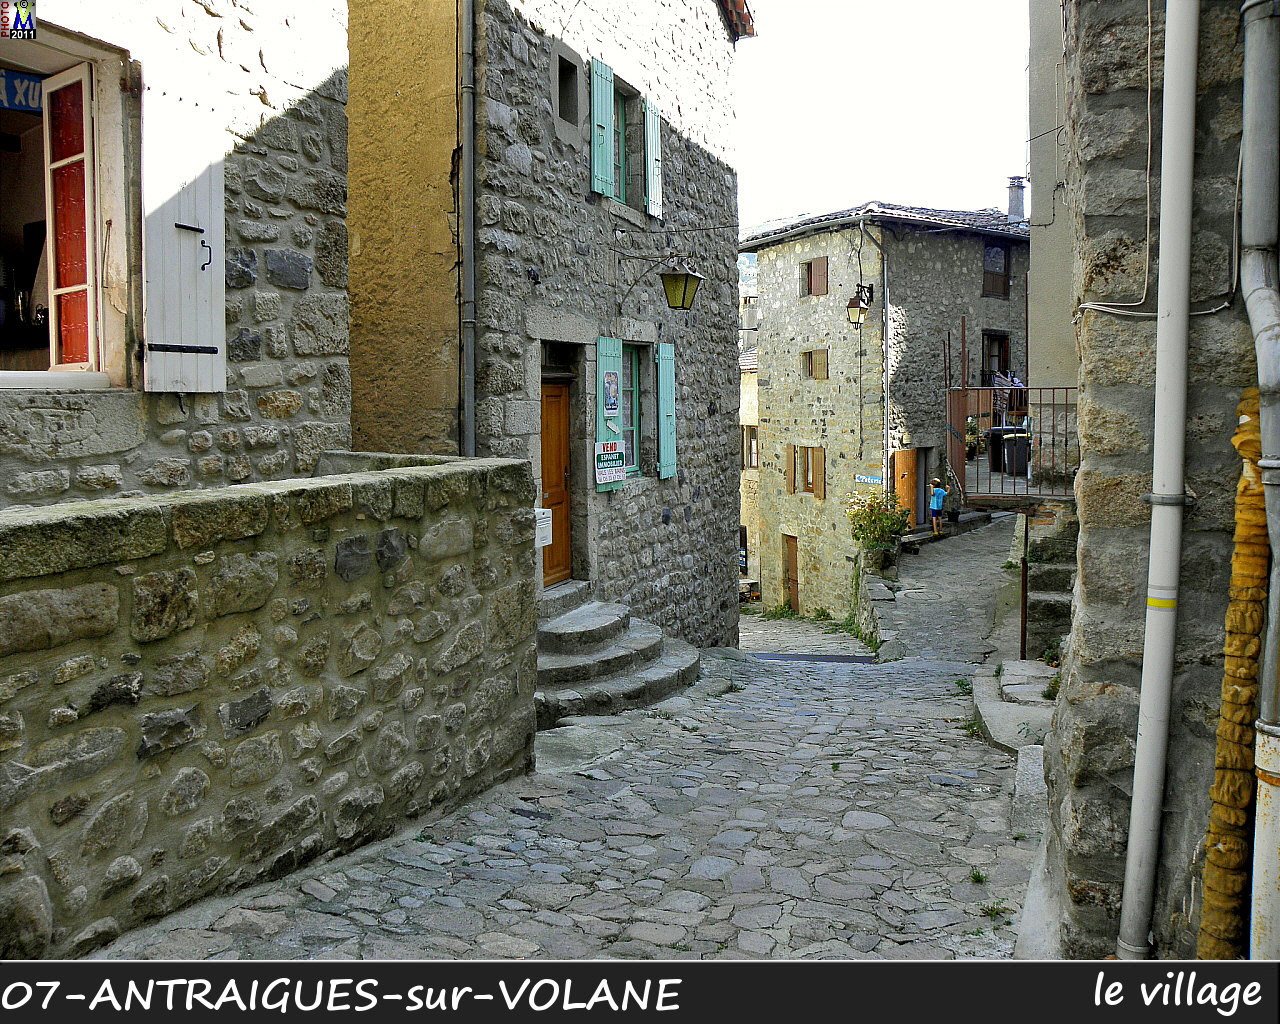 07ANTRAIGUES-VOLANE_village_120.jpg